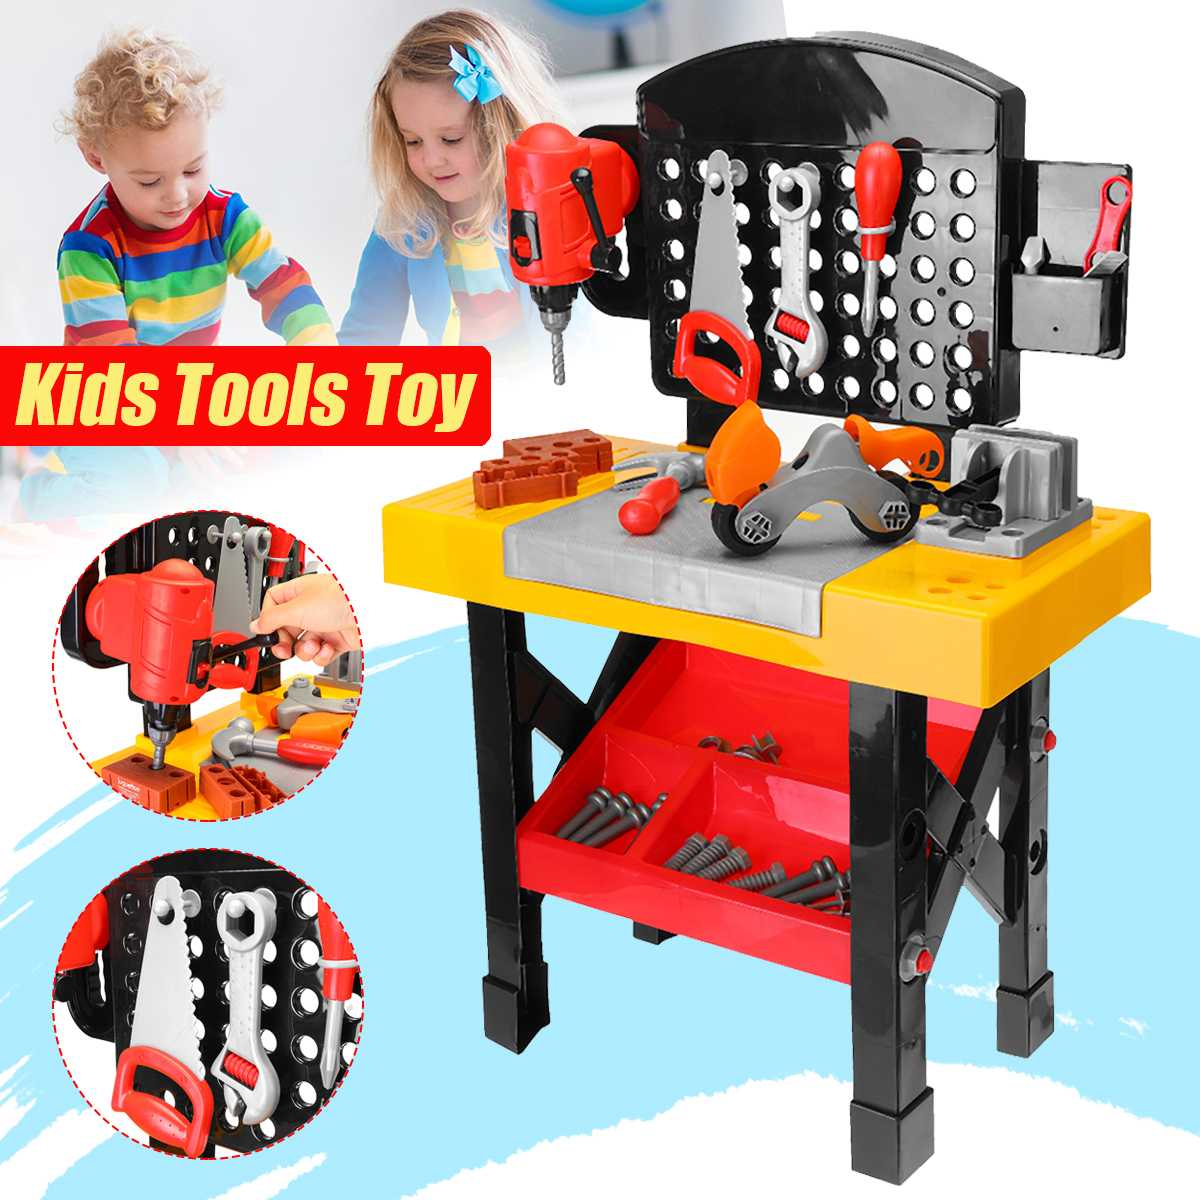 Children Boy Repair Tools Toys Workbench Electric Drill Hammer Wrench Simulation Carpenter Toys For Kid Learnning Education Toys